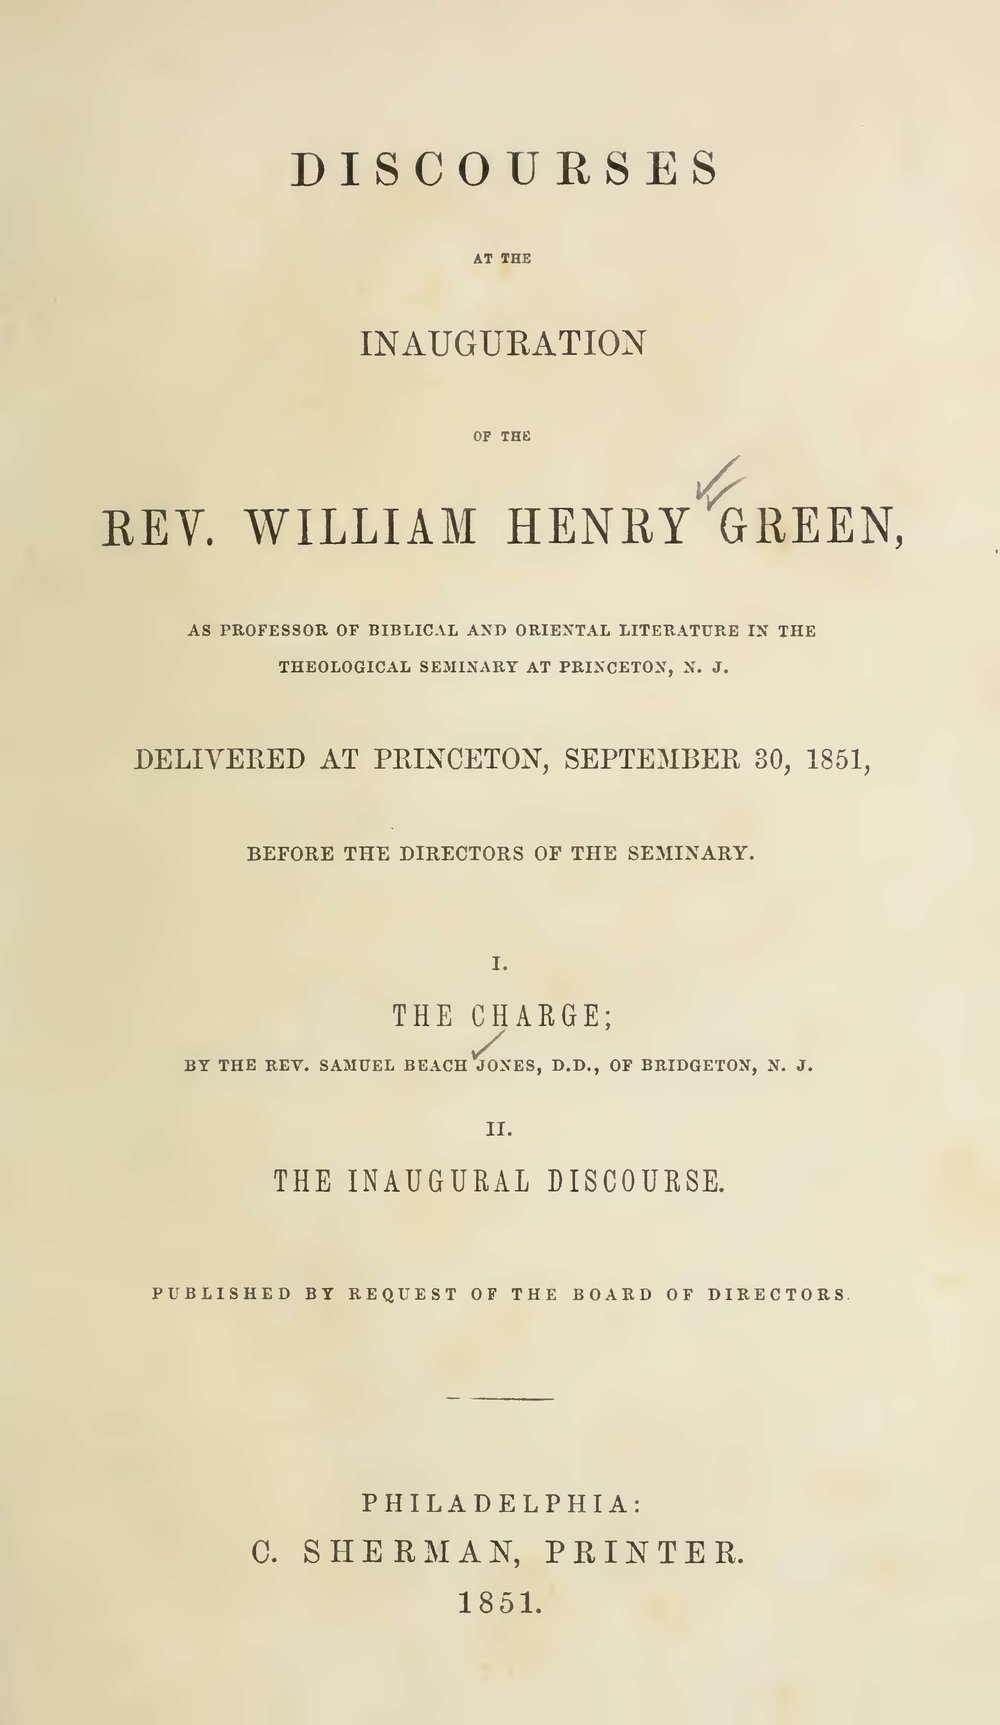 Green, William Henry, Discourses at the Inauguration of the Rev. William Henry Green Title Page.jpg